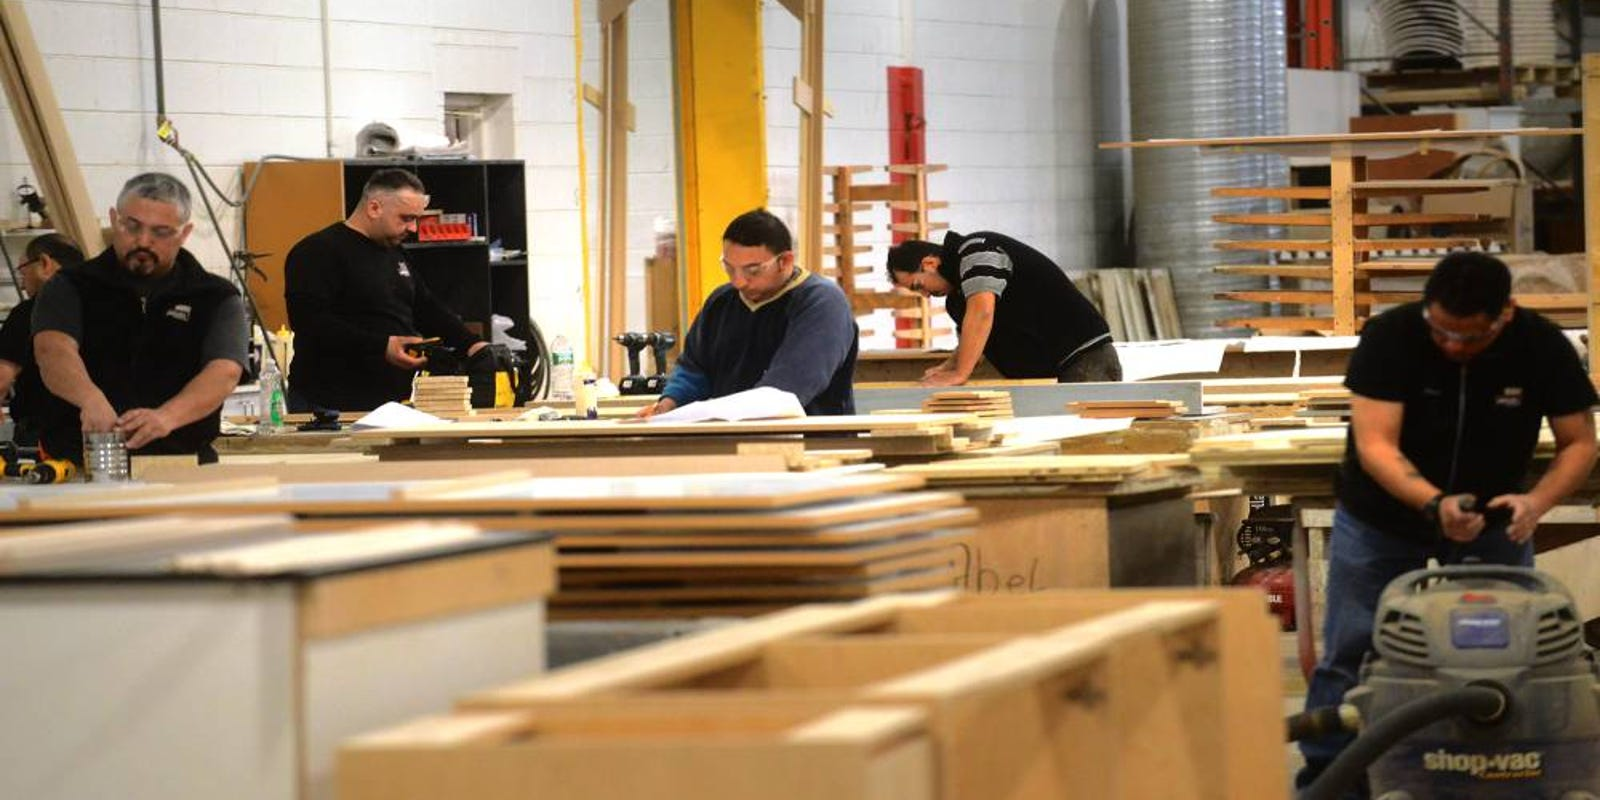 Woodworking Company Takes Over Vacant Passaic Factory